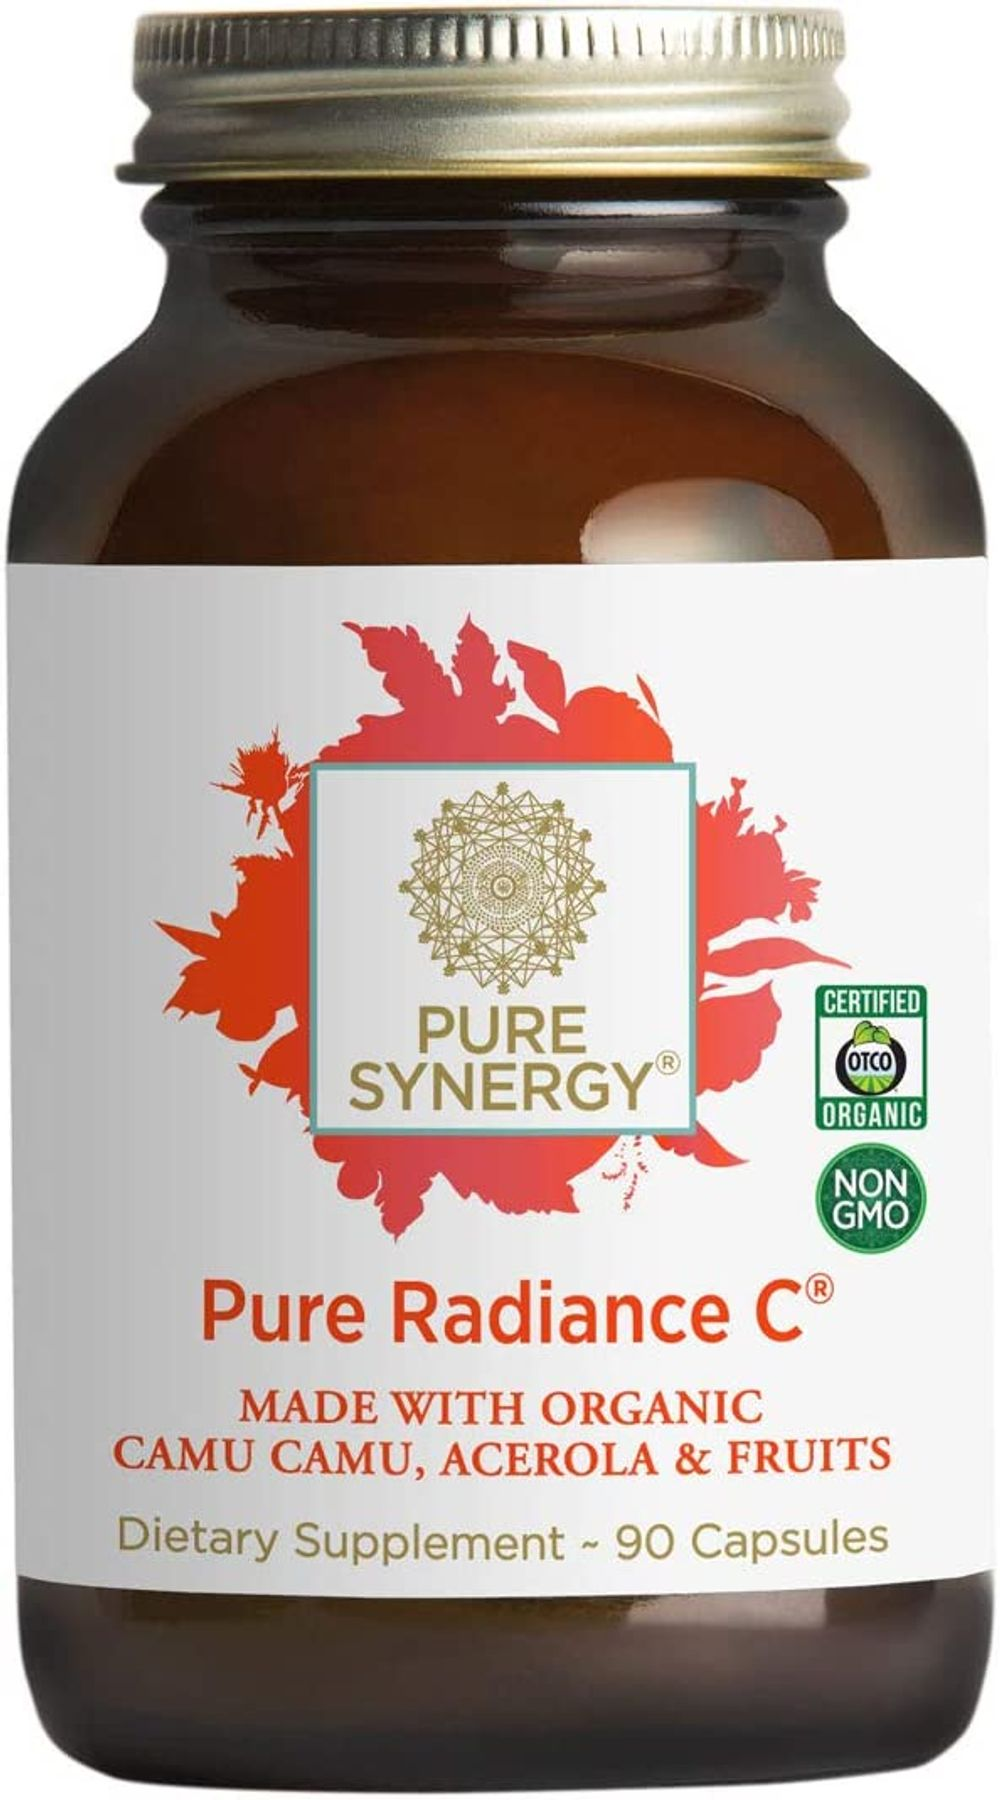 Pure Synergy Pure Radiance C   90 Capsules   Made with Organic Ingredients   Non-GMO   Vegan   100% Natural Vitamin C with Organic Camu Camu Extract